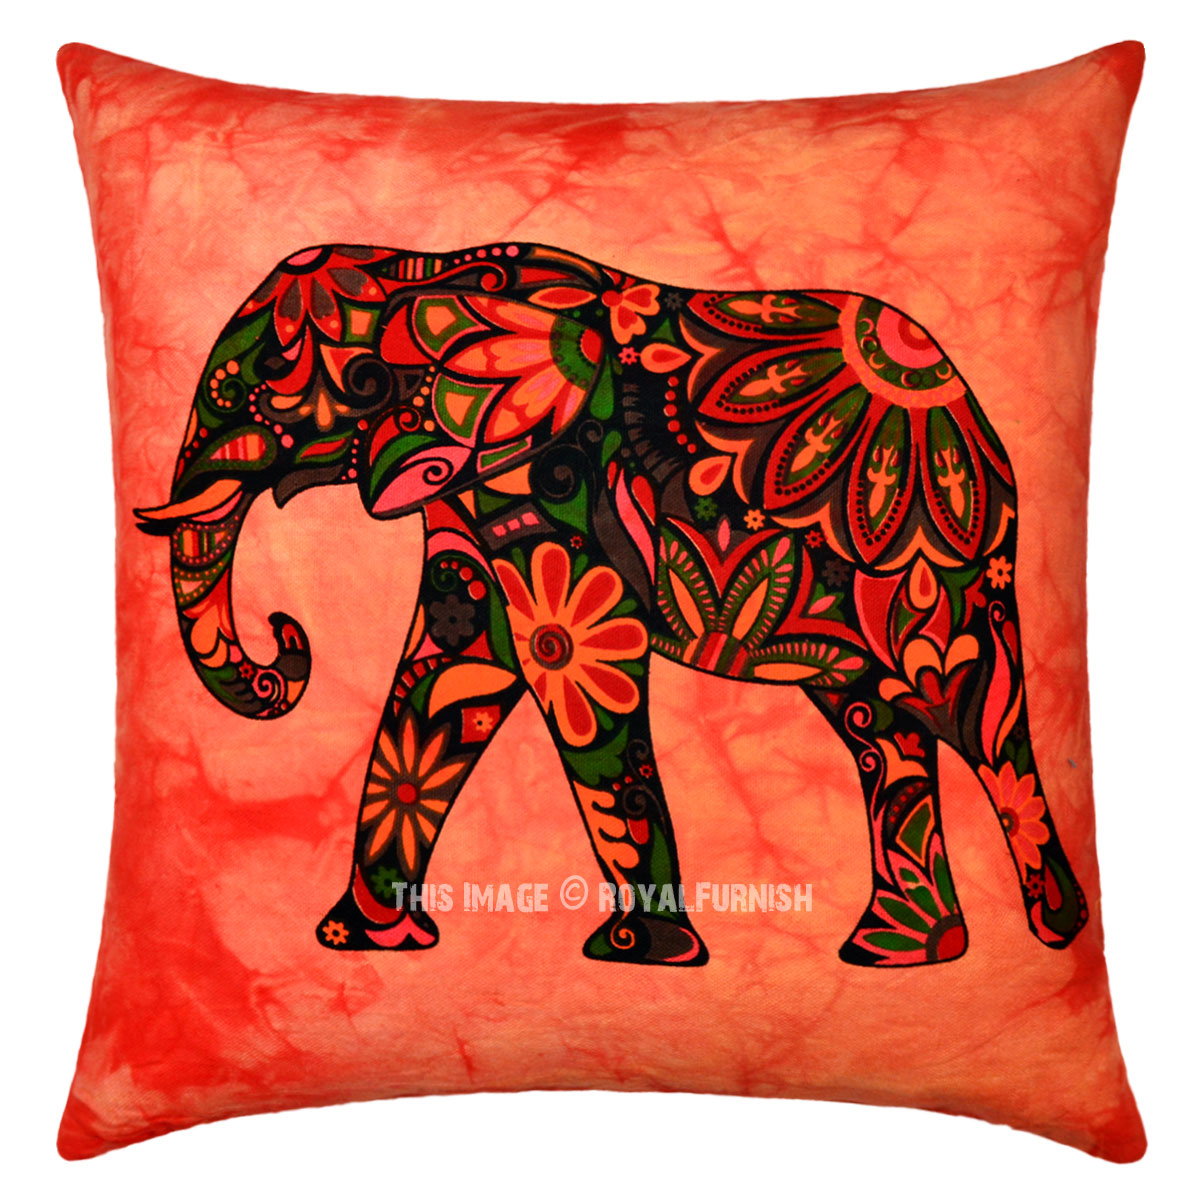 Red Multi Decorative Tie Dye Printed Asian Elephant Throw Pillow Cover 16X16 - RoyalFurnish.com